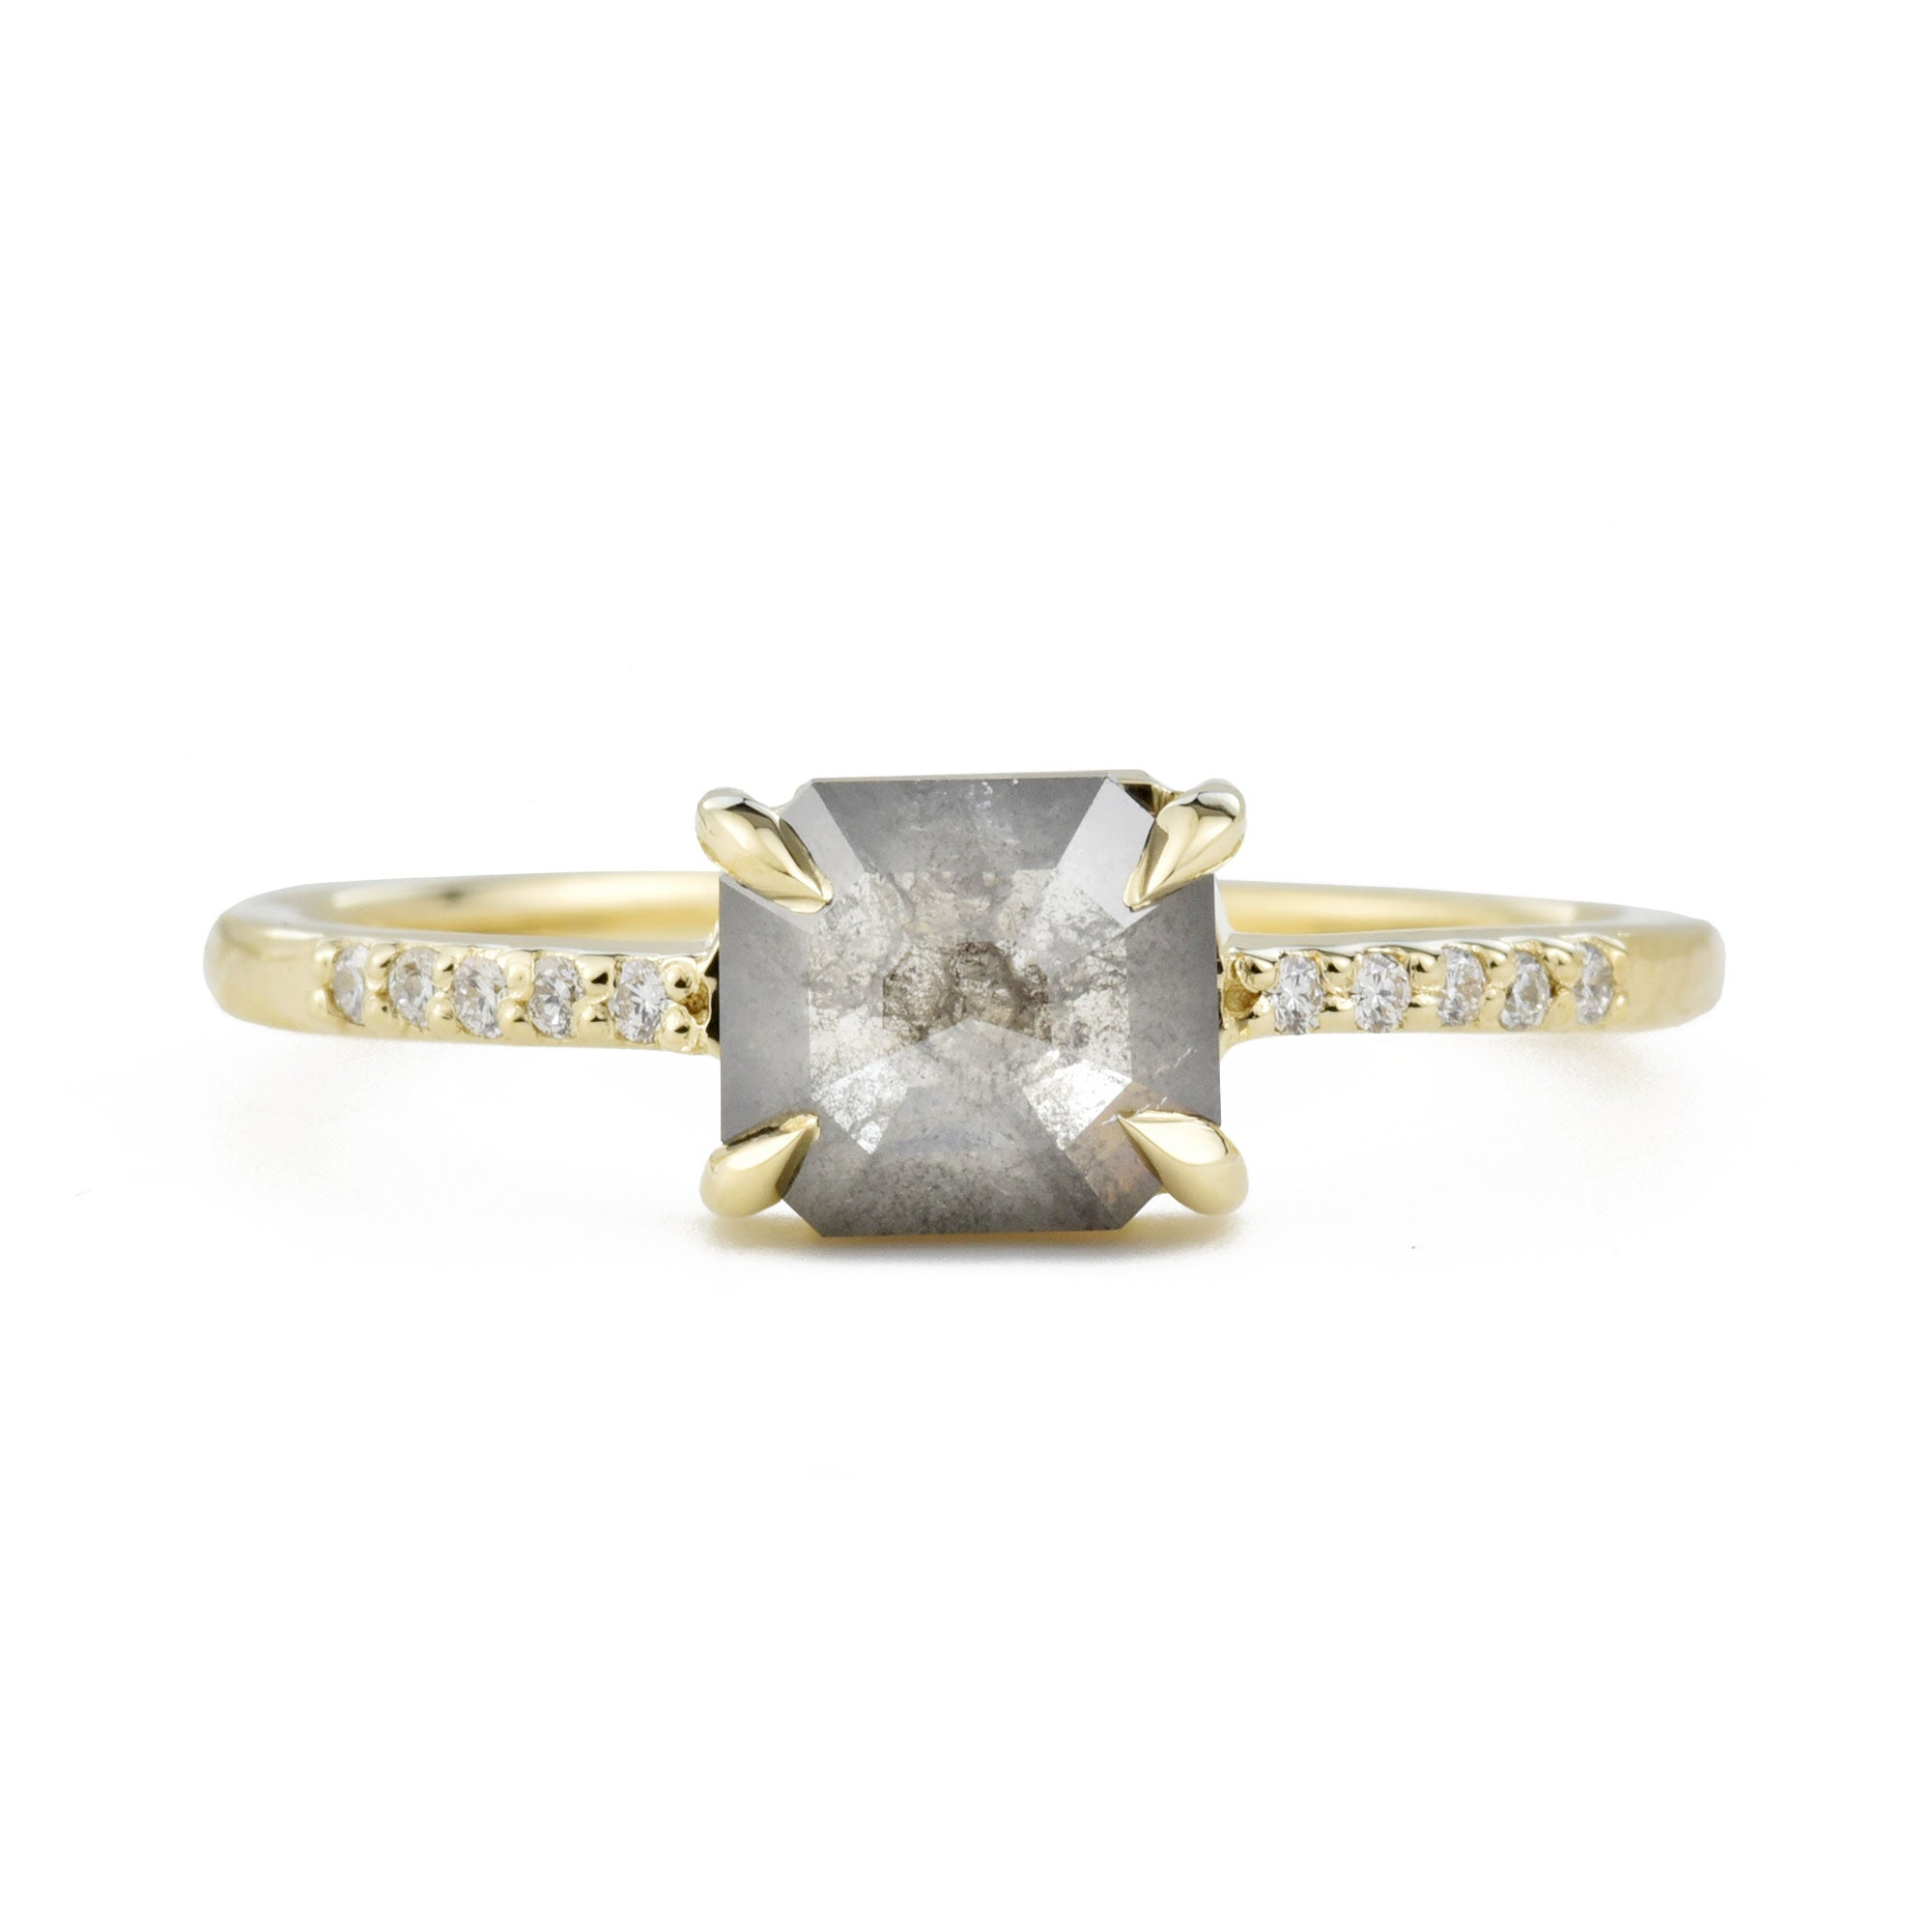 Aria Gray Octagon Diamond Engagement Ring